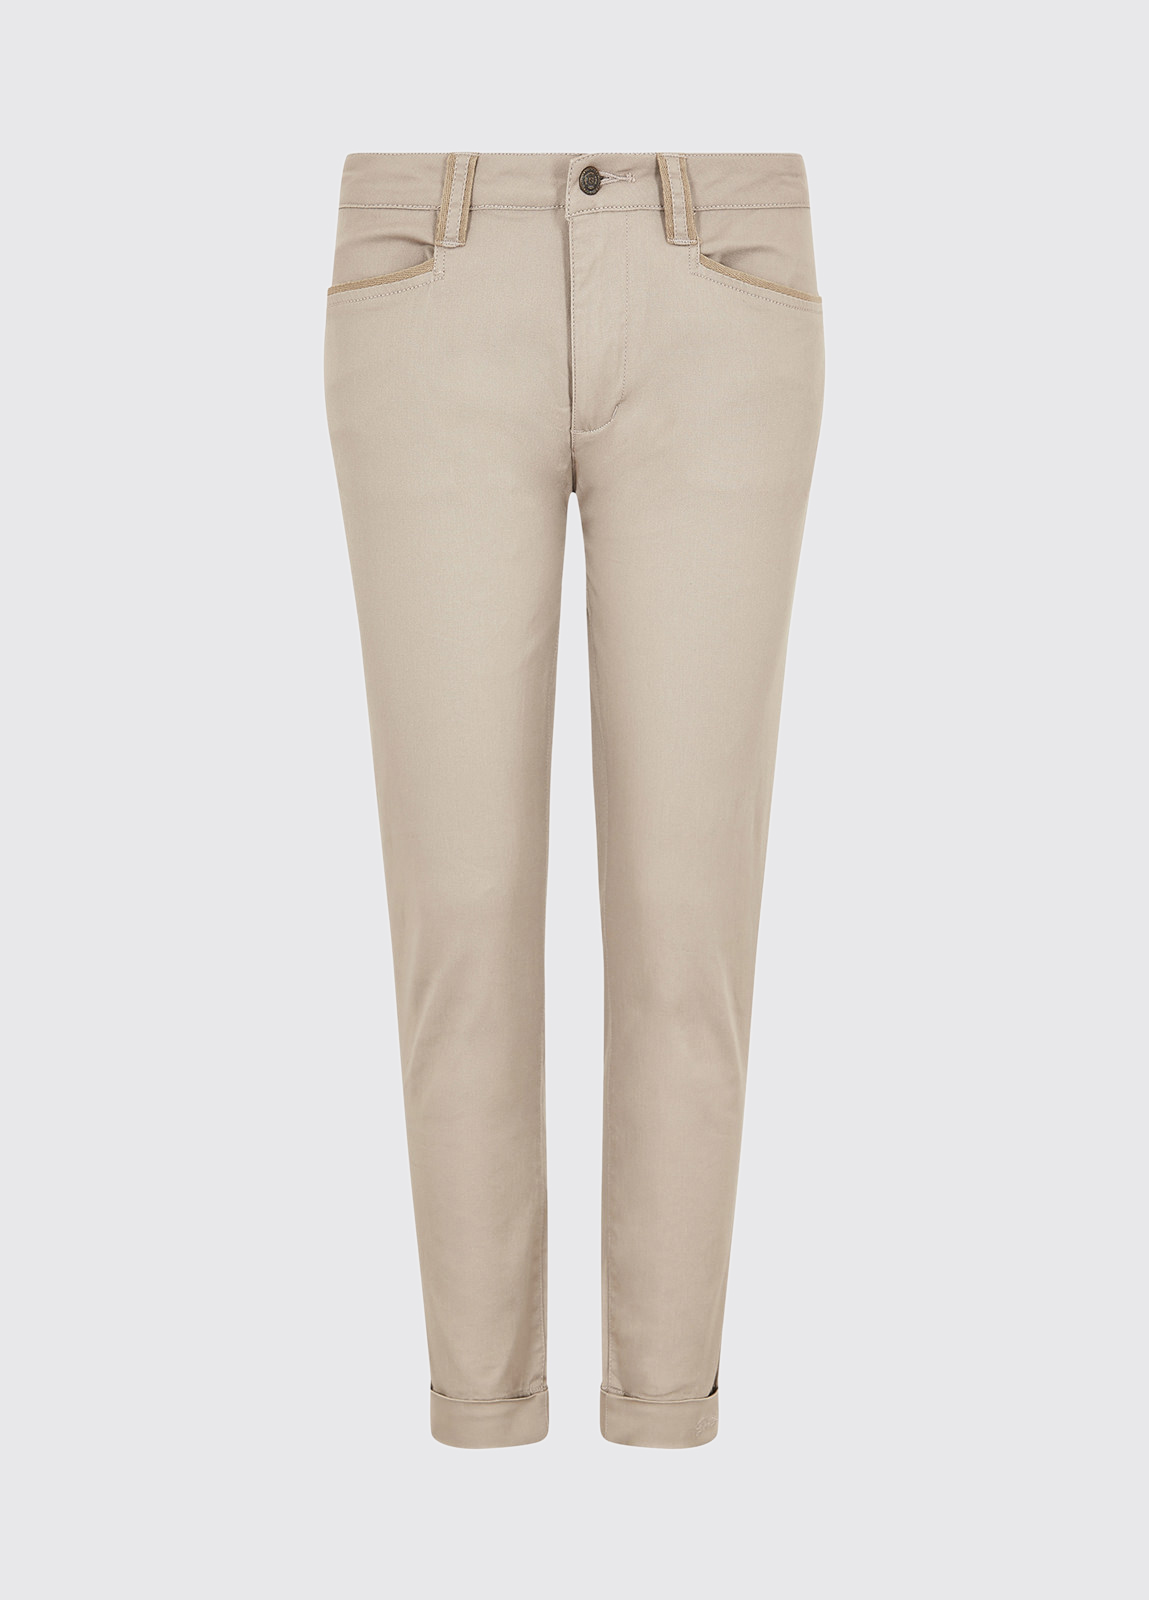 Killybegs Chinos - Tan